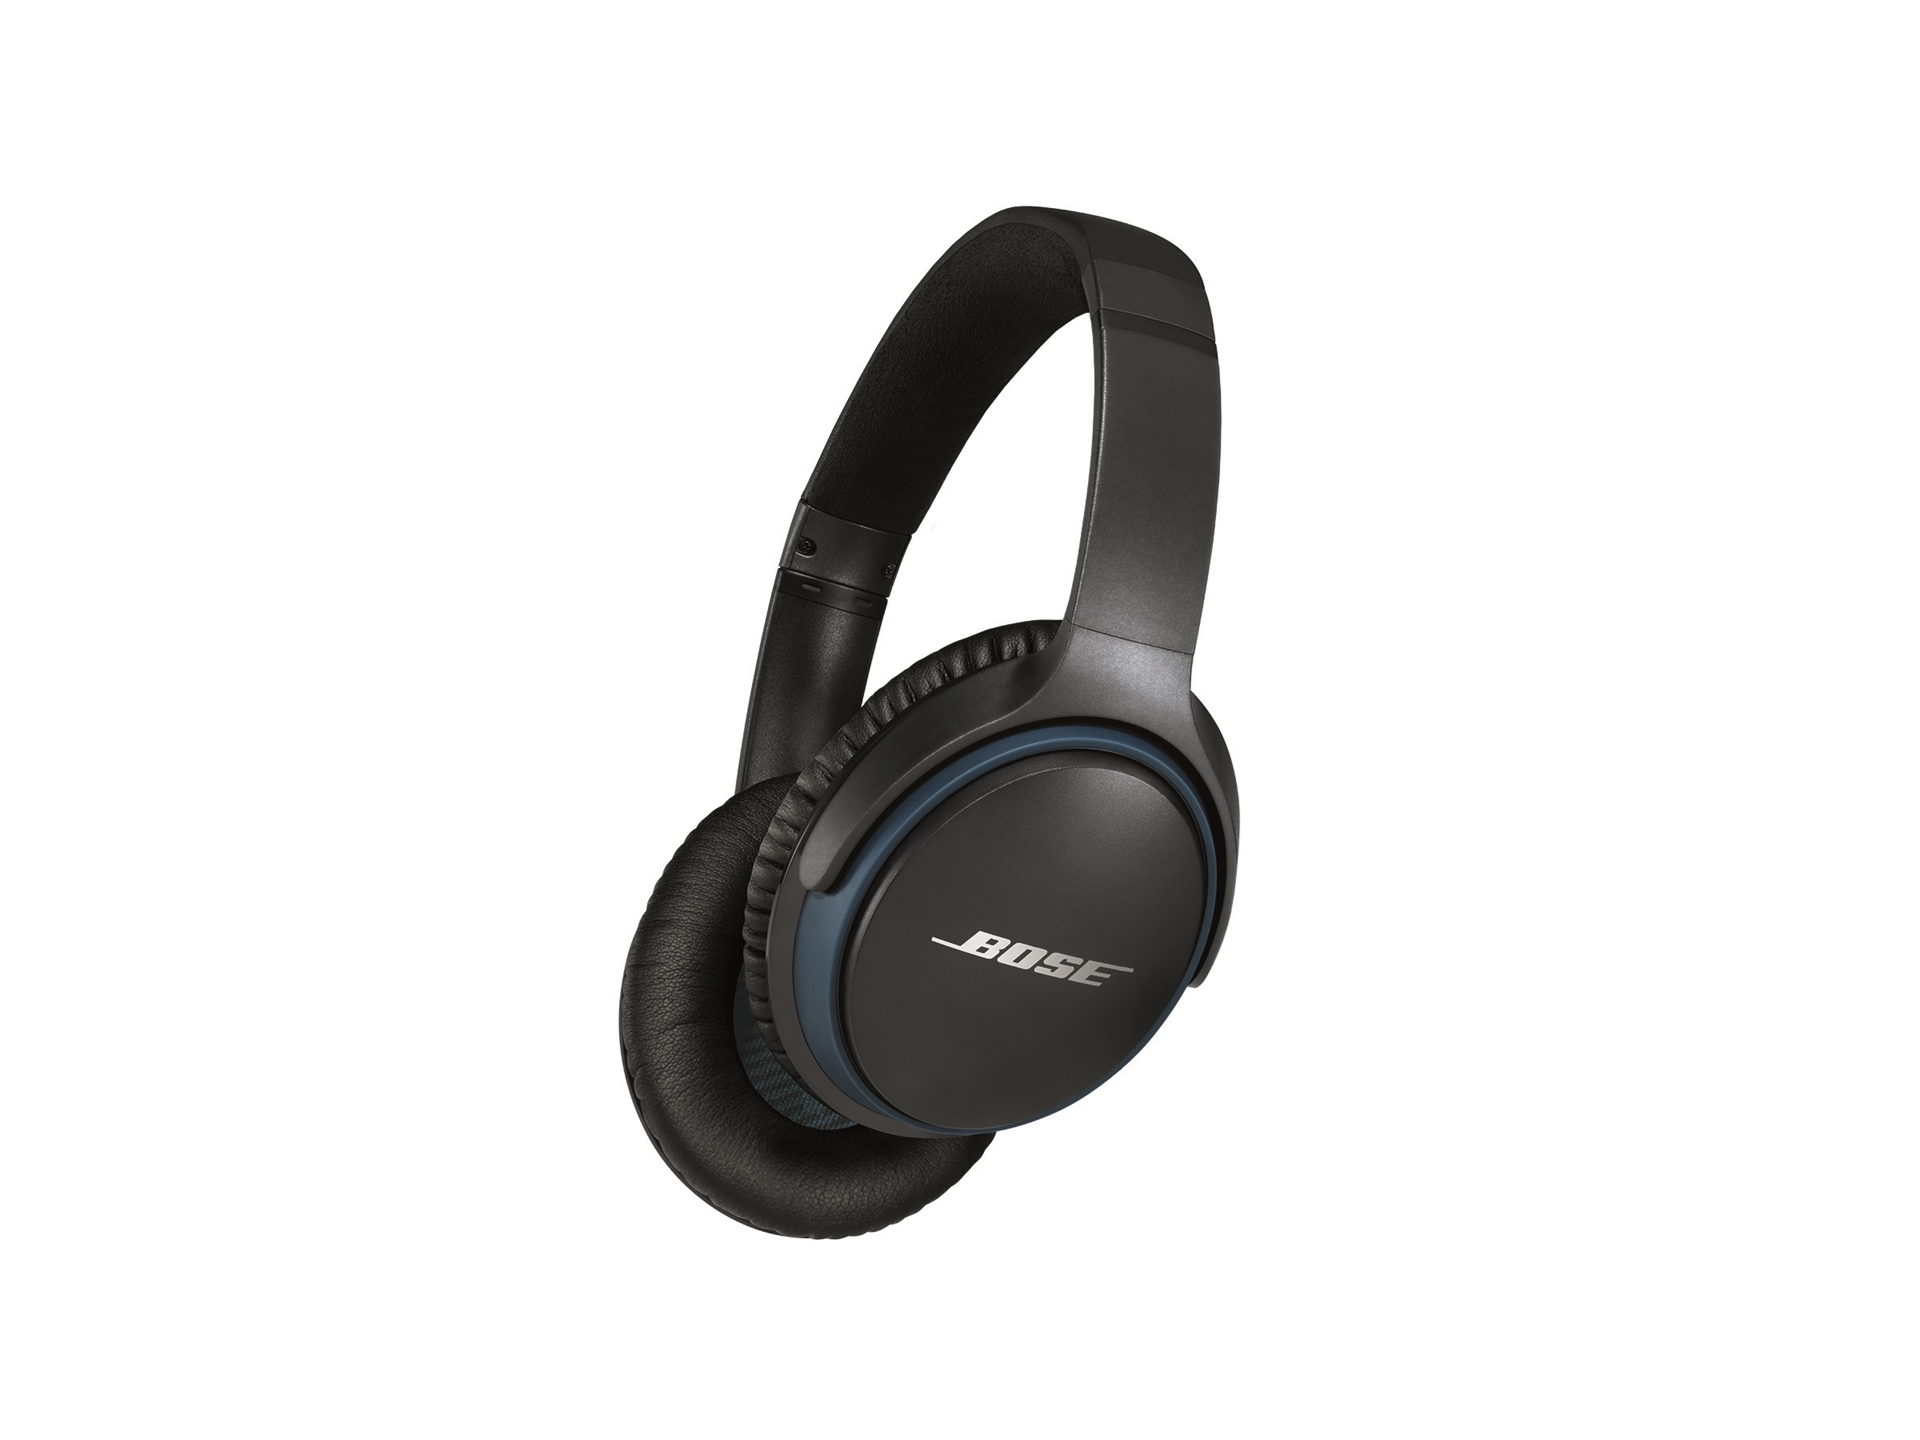 bose casque circum soundlink bluetooth centre d 39 achats en ligne ouvrez votre boutique en. Black Bedroom Furniture Sets. Home Design Ideas